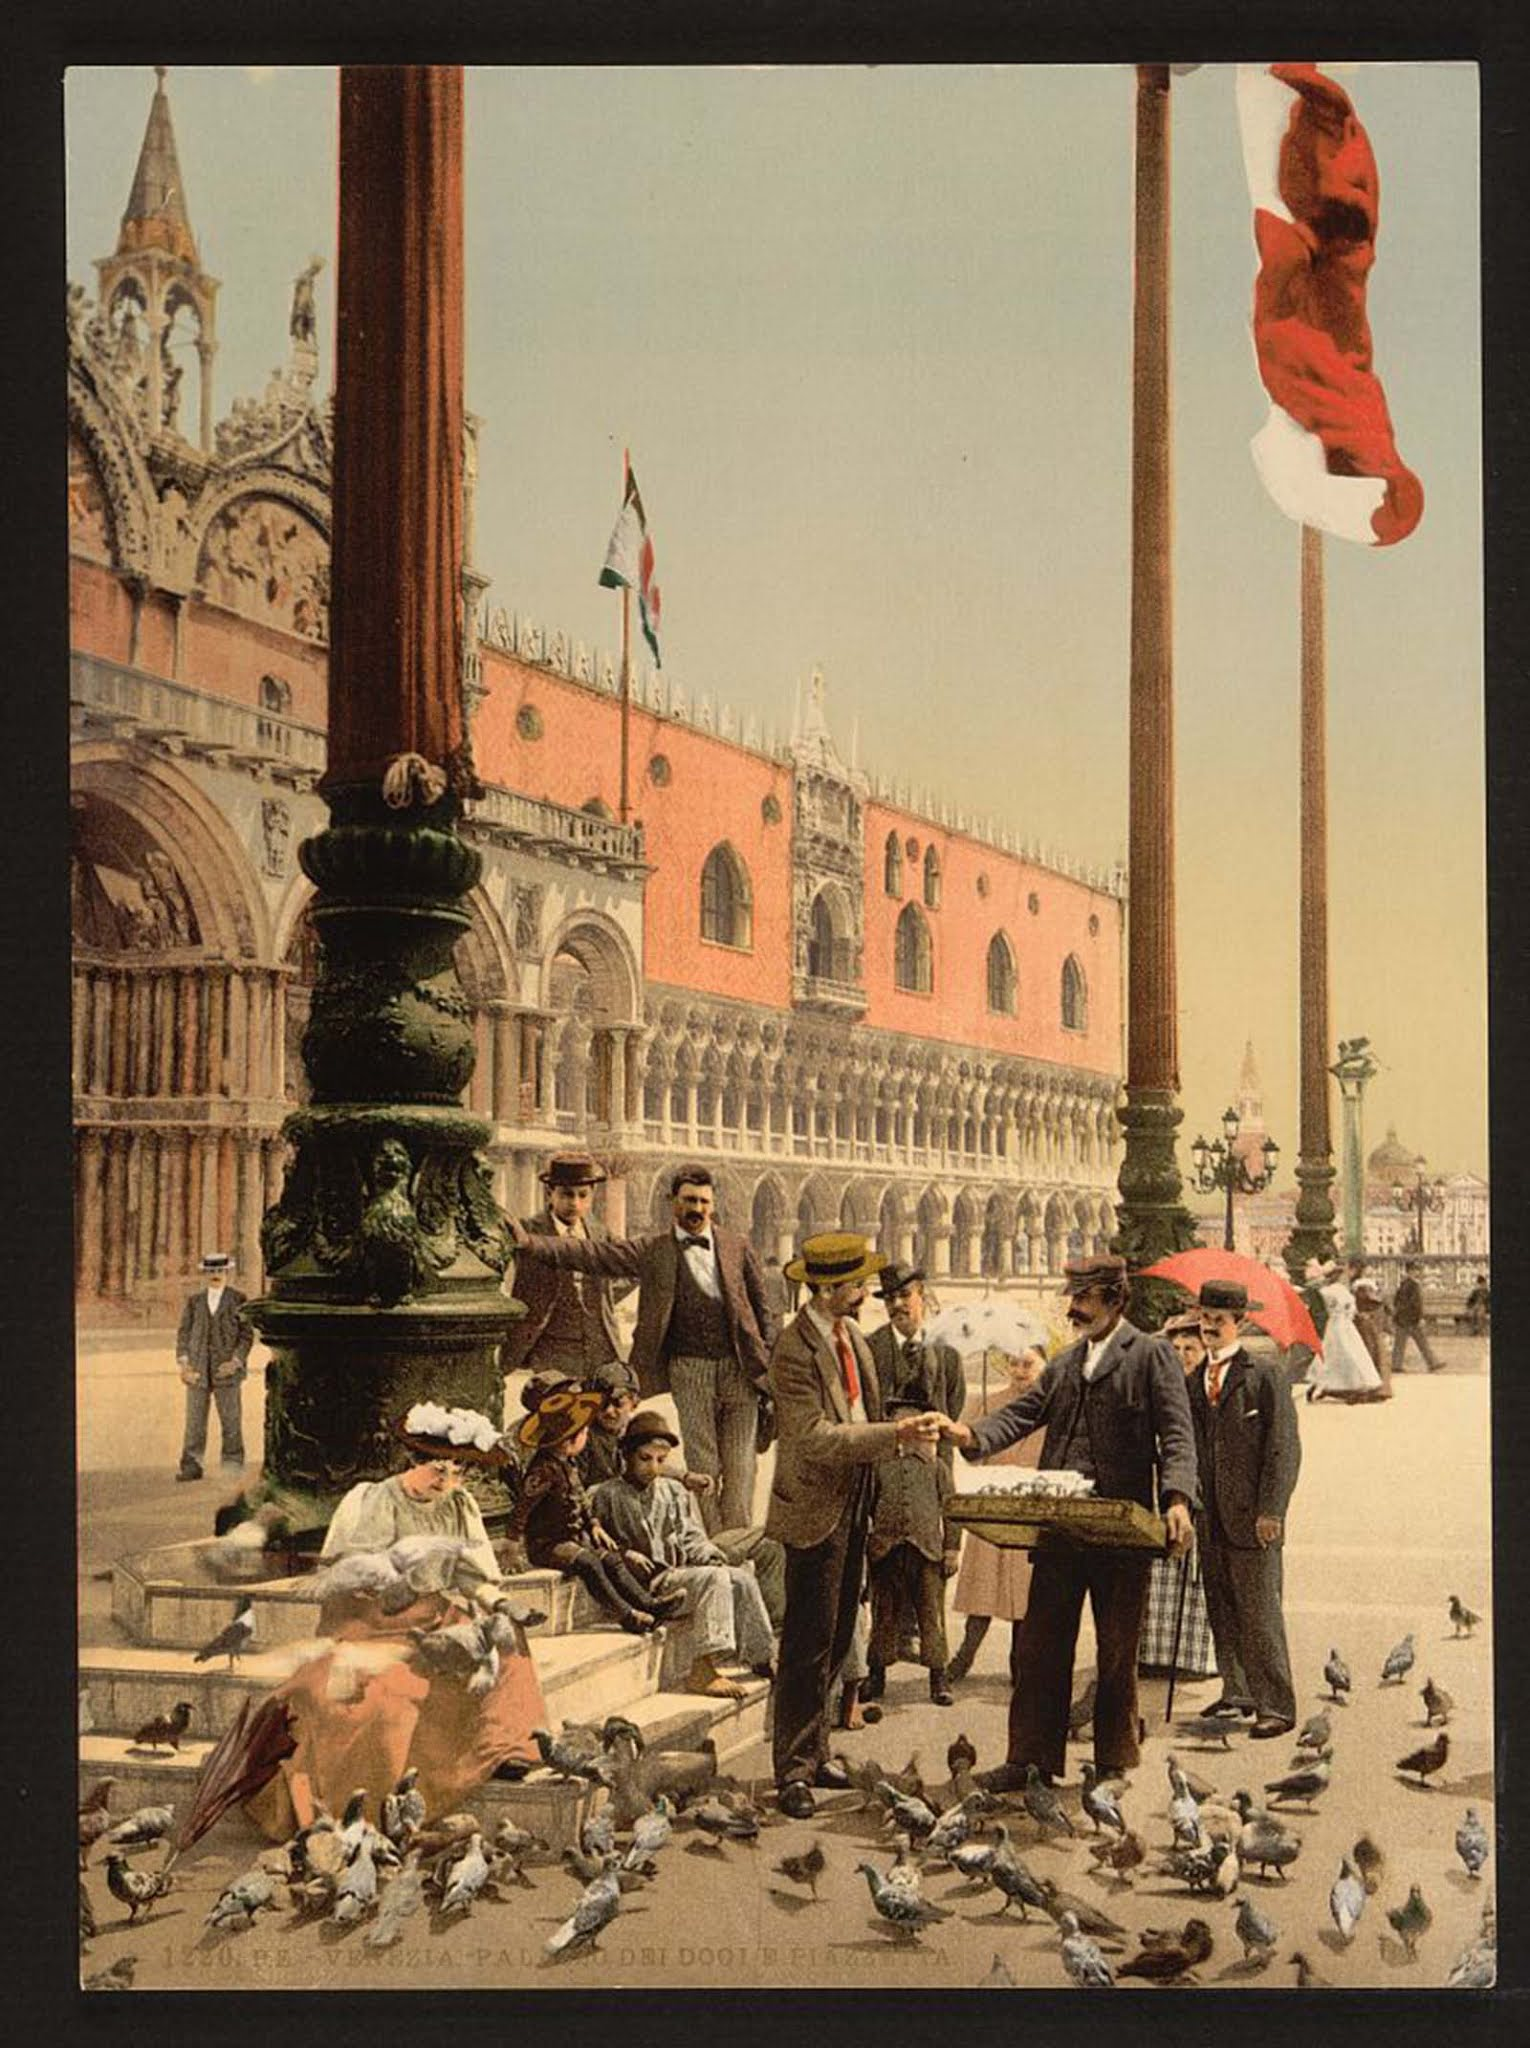 venice-in-beautiful-old-color-images-1890_24.jpg